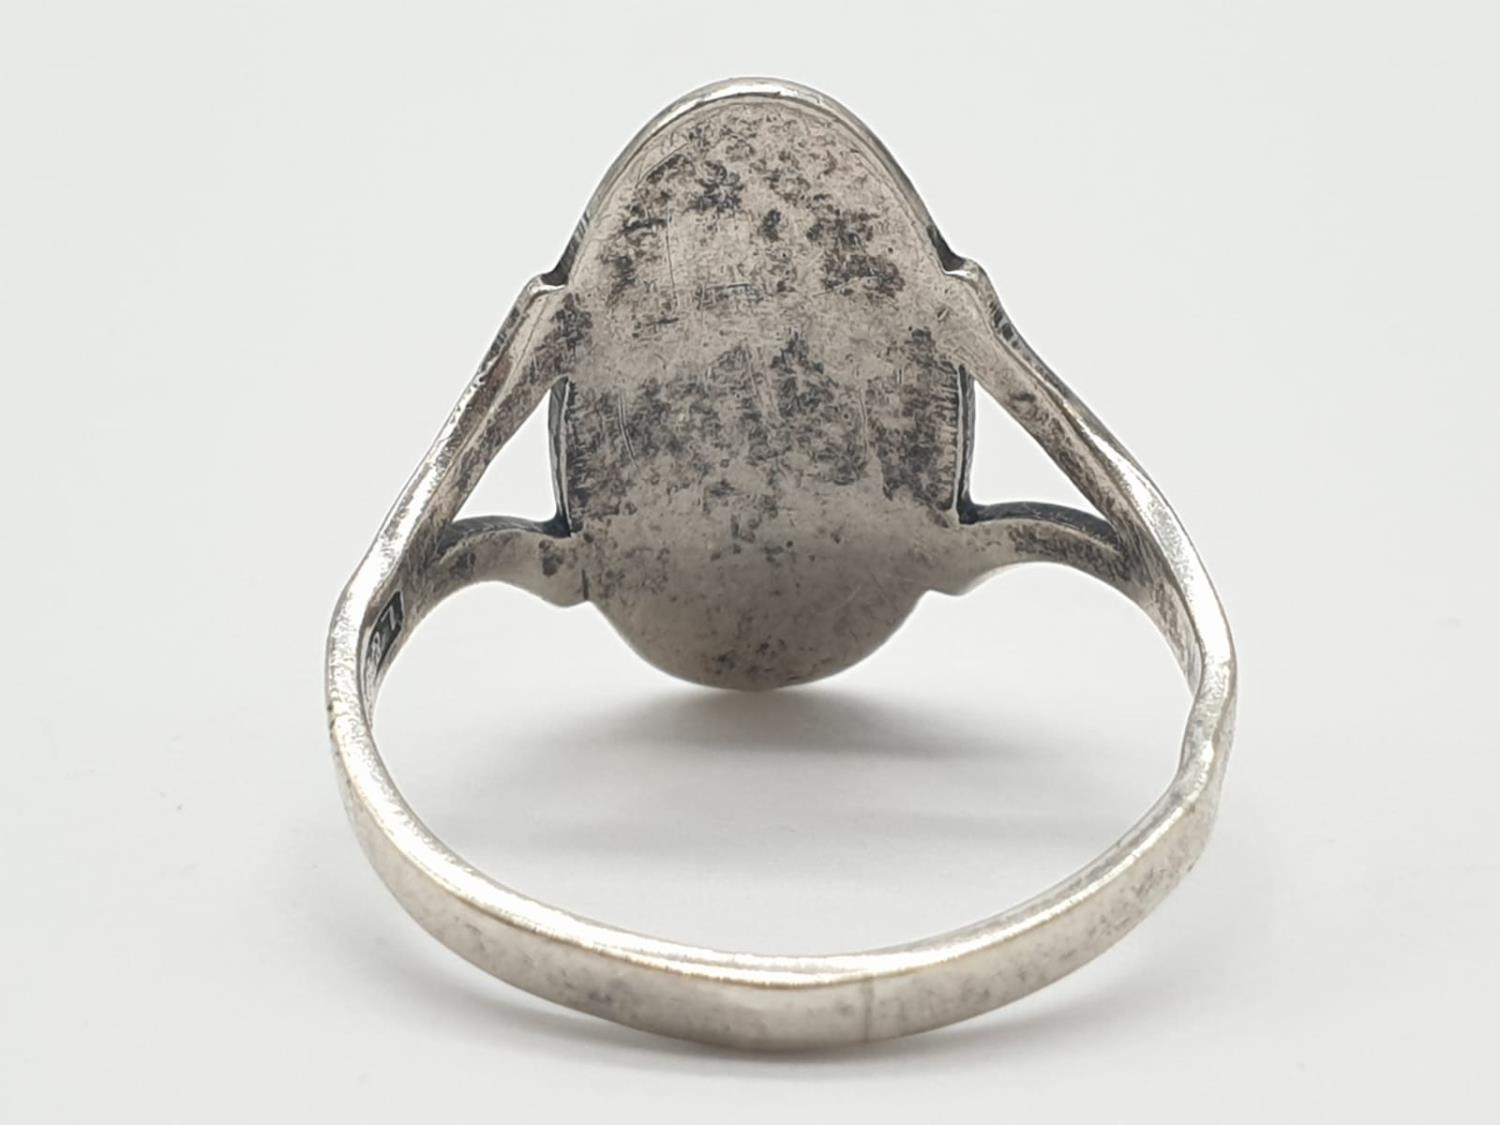 L&W Silver Vintage RING. 2.2g Size M. - Image 3 of 5